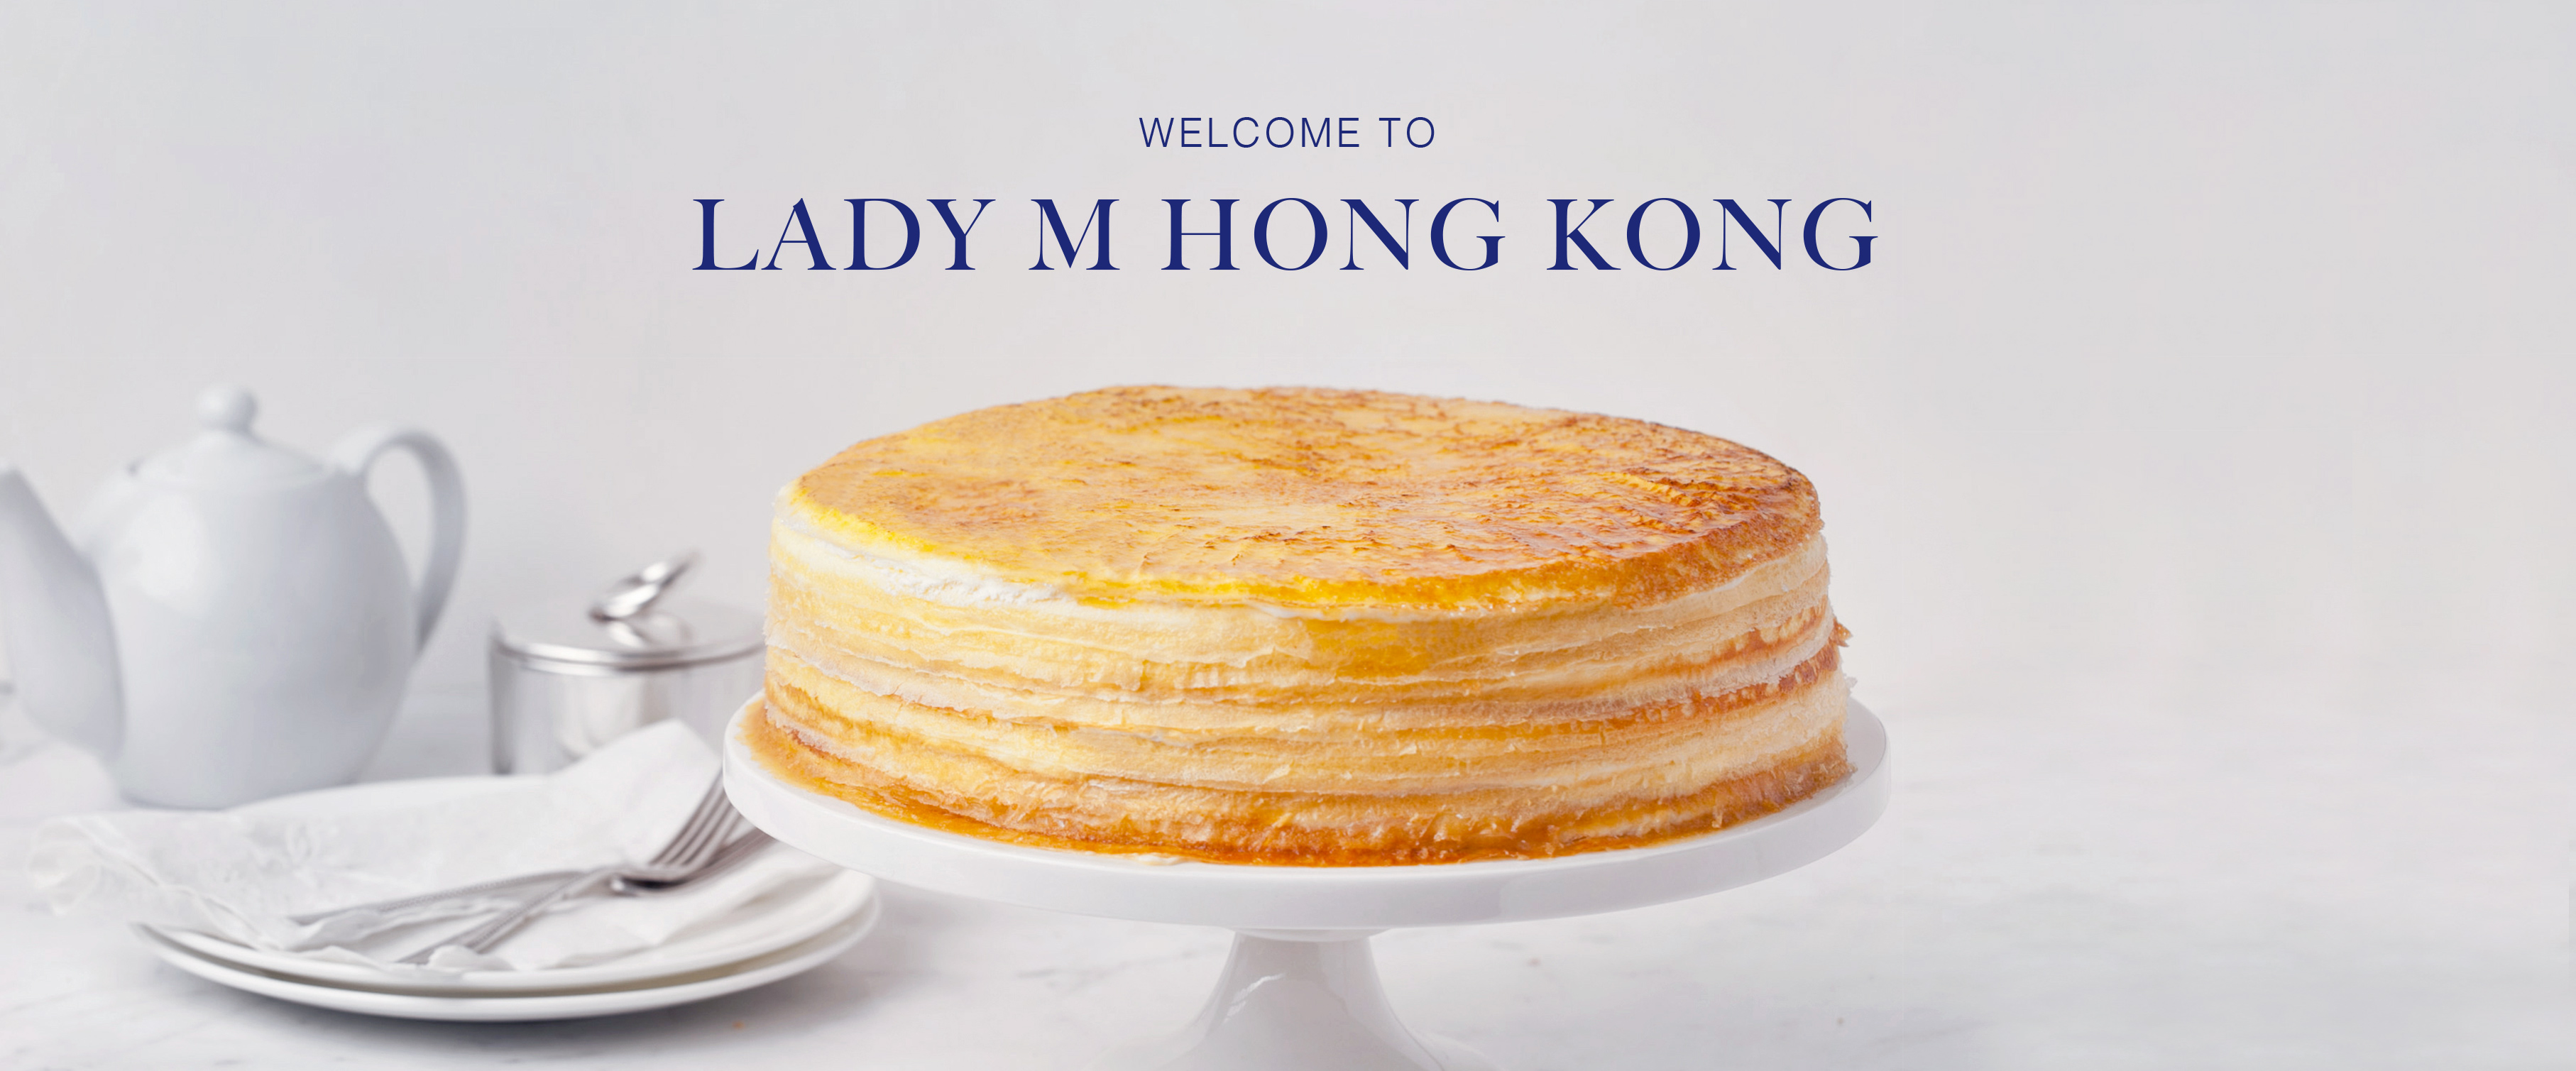 Known For Our Signature Mille Crepes Cake Lady MR Has Been Considered As One Of The Finest And Most Celebrated Patisseries In New York City